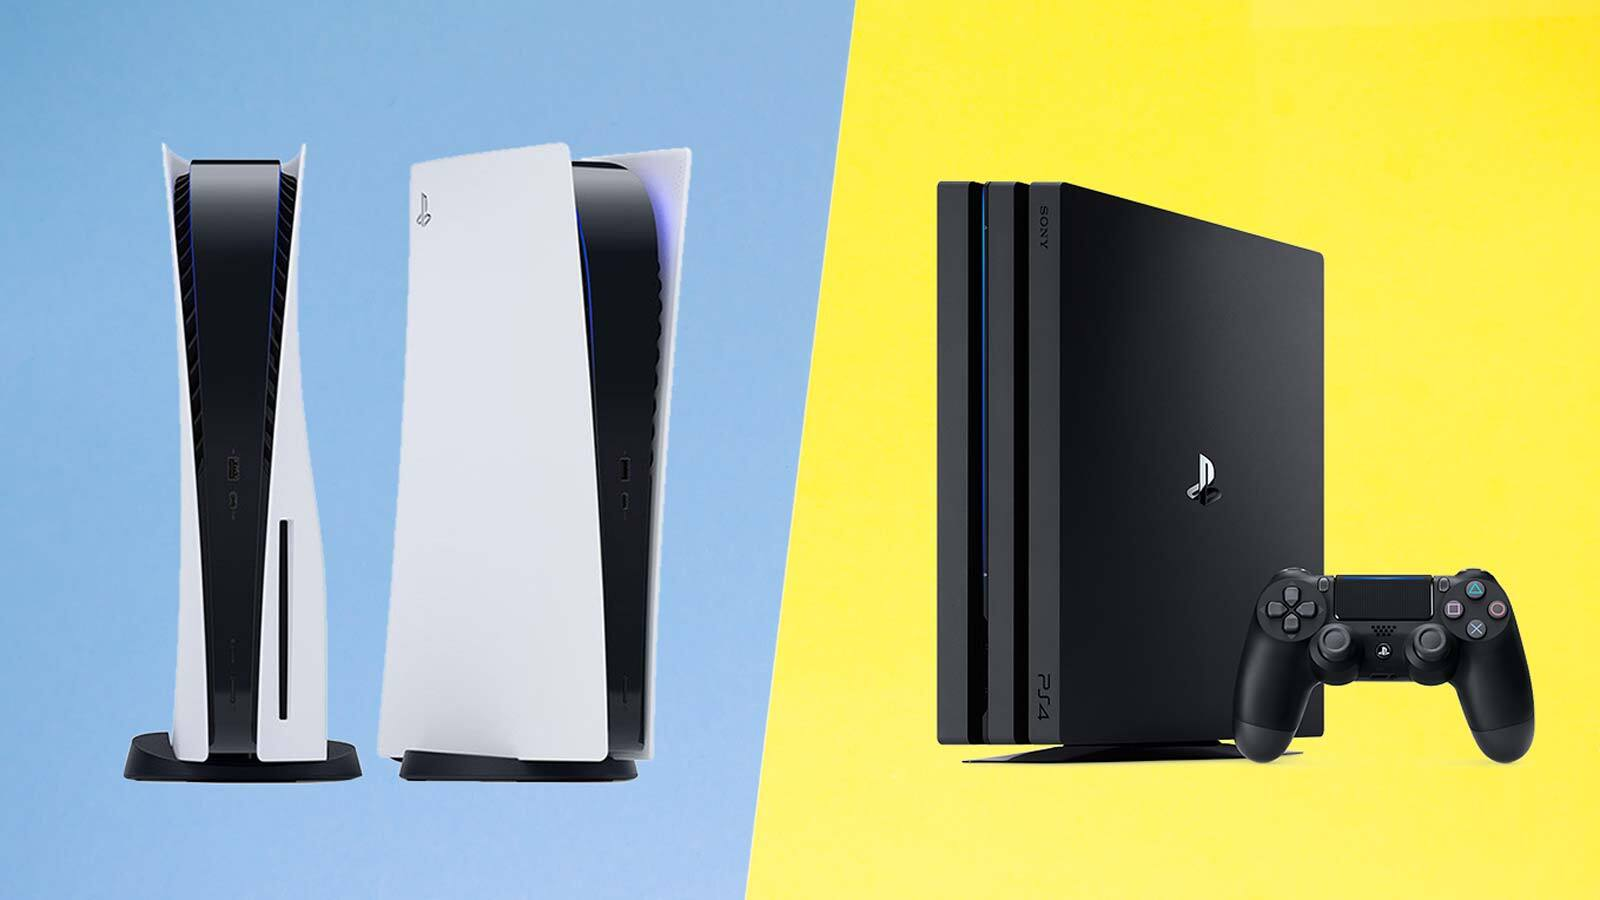 PS4 Pro vs. PS5: price and performance comparison